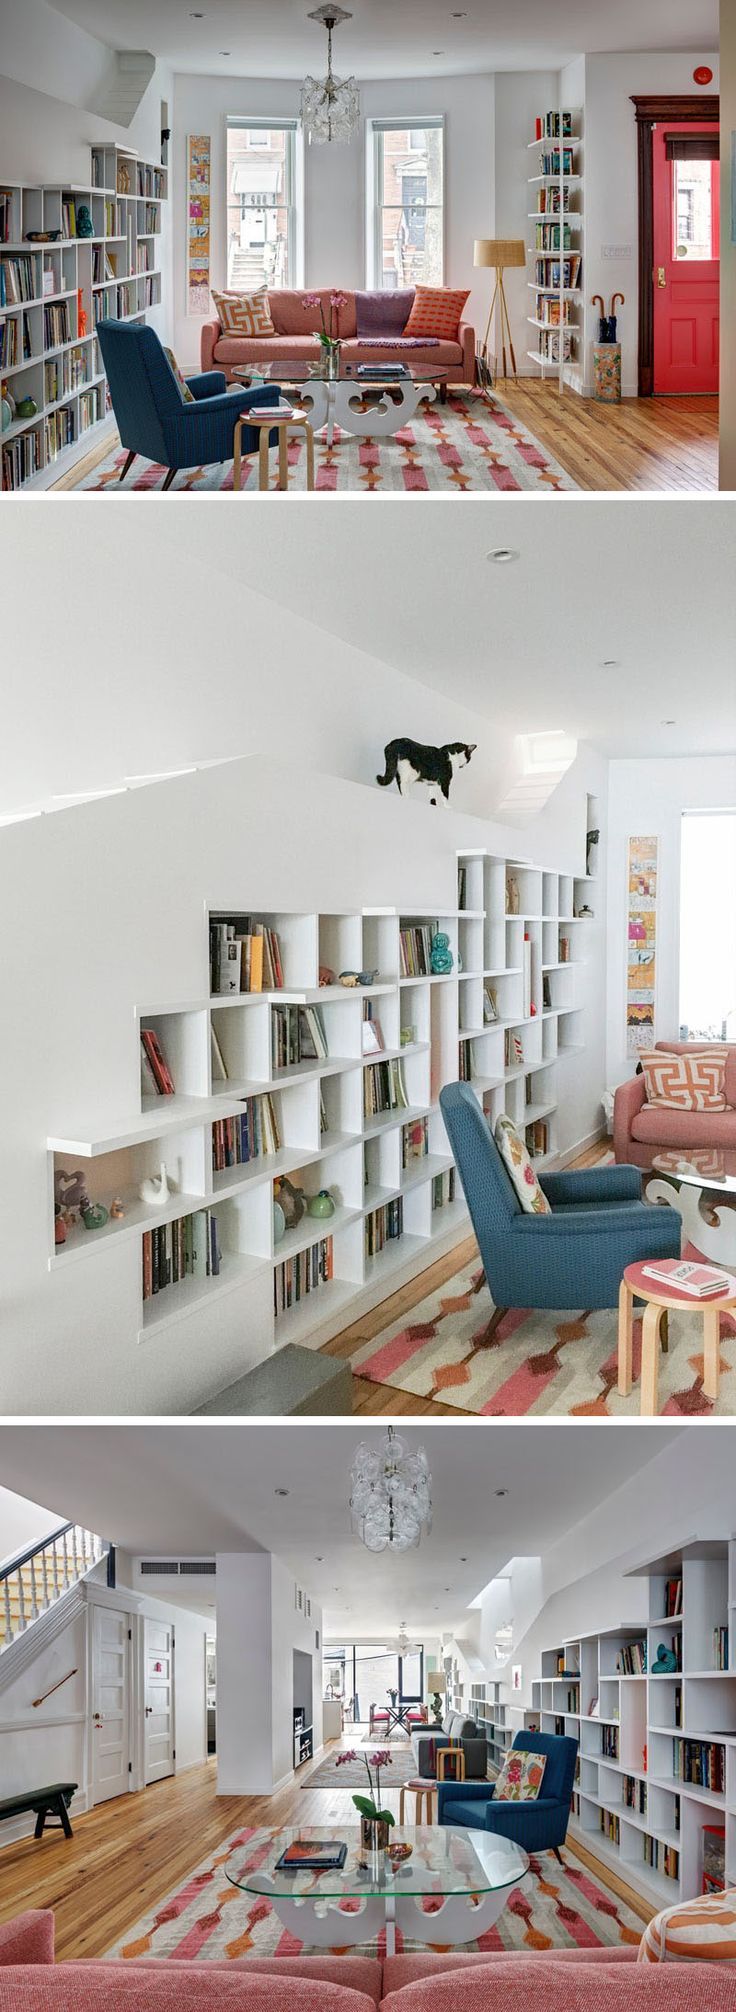 A Built In Bookcase Designed For Cats Lines An Entire Wall This Home